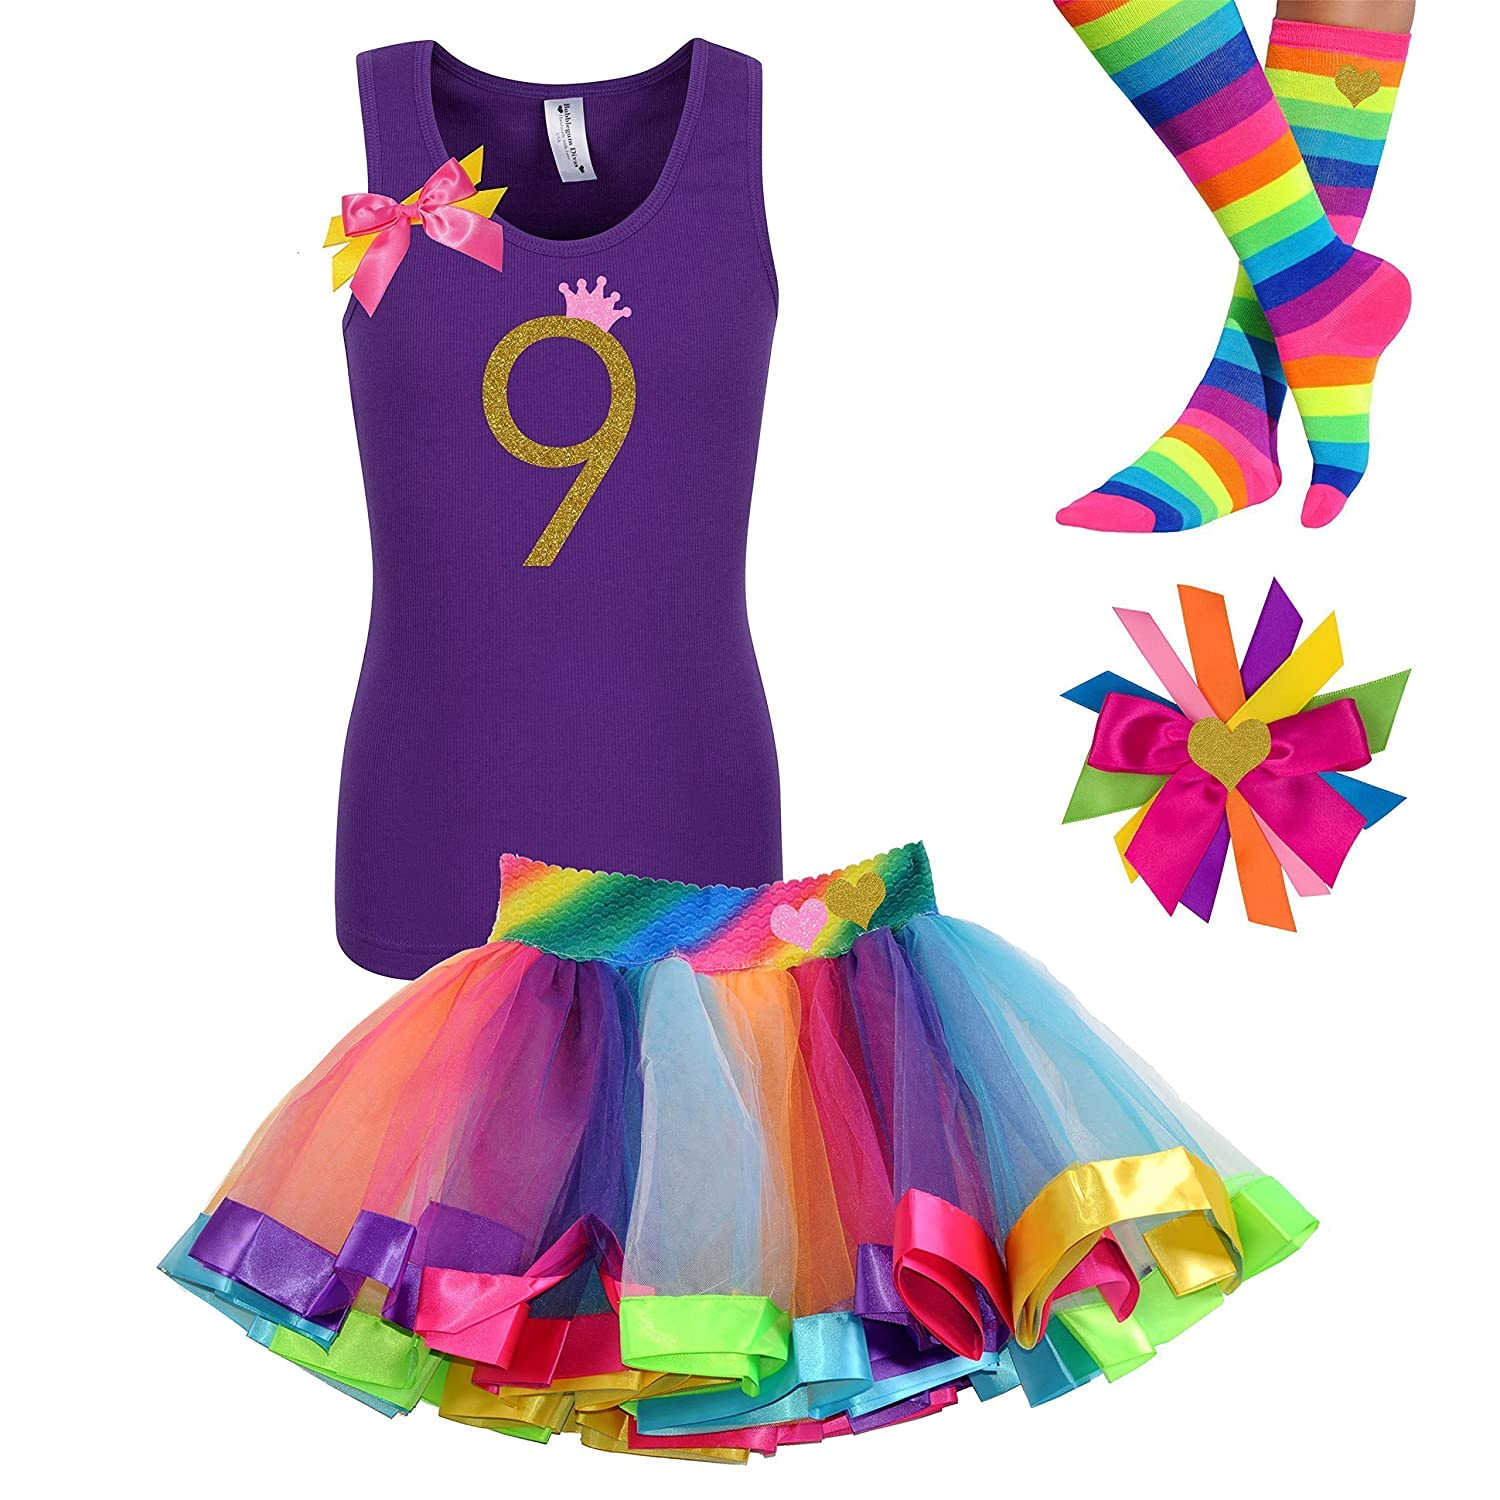 9th Birthday Shirt Rainbow Tutu Girls Party Outfit 4PC Gift Set ...